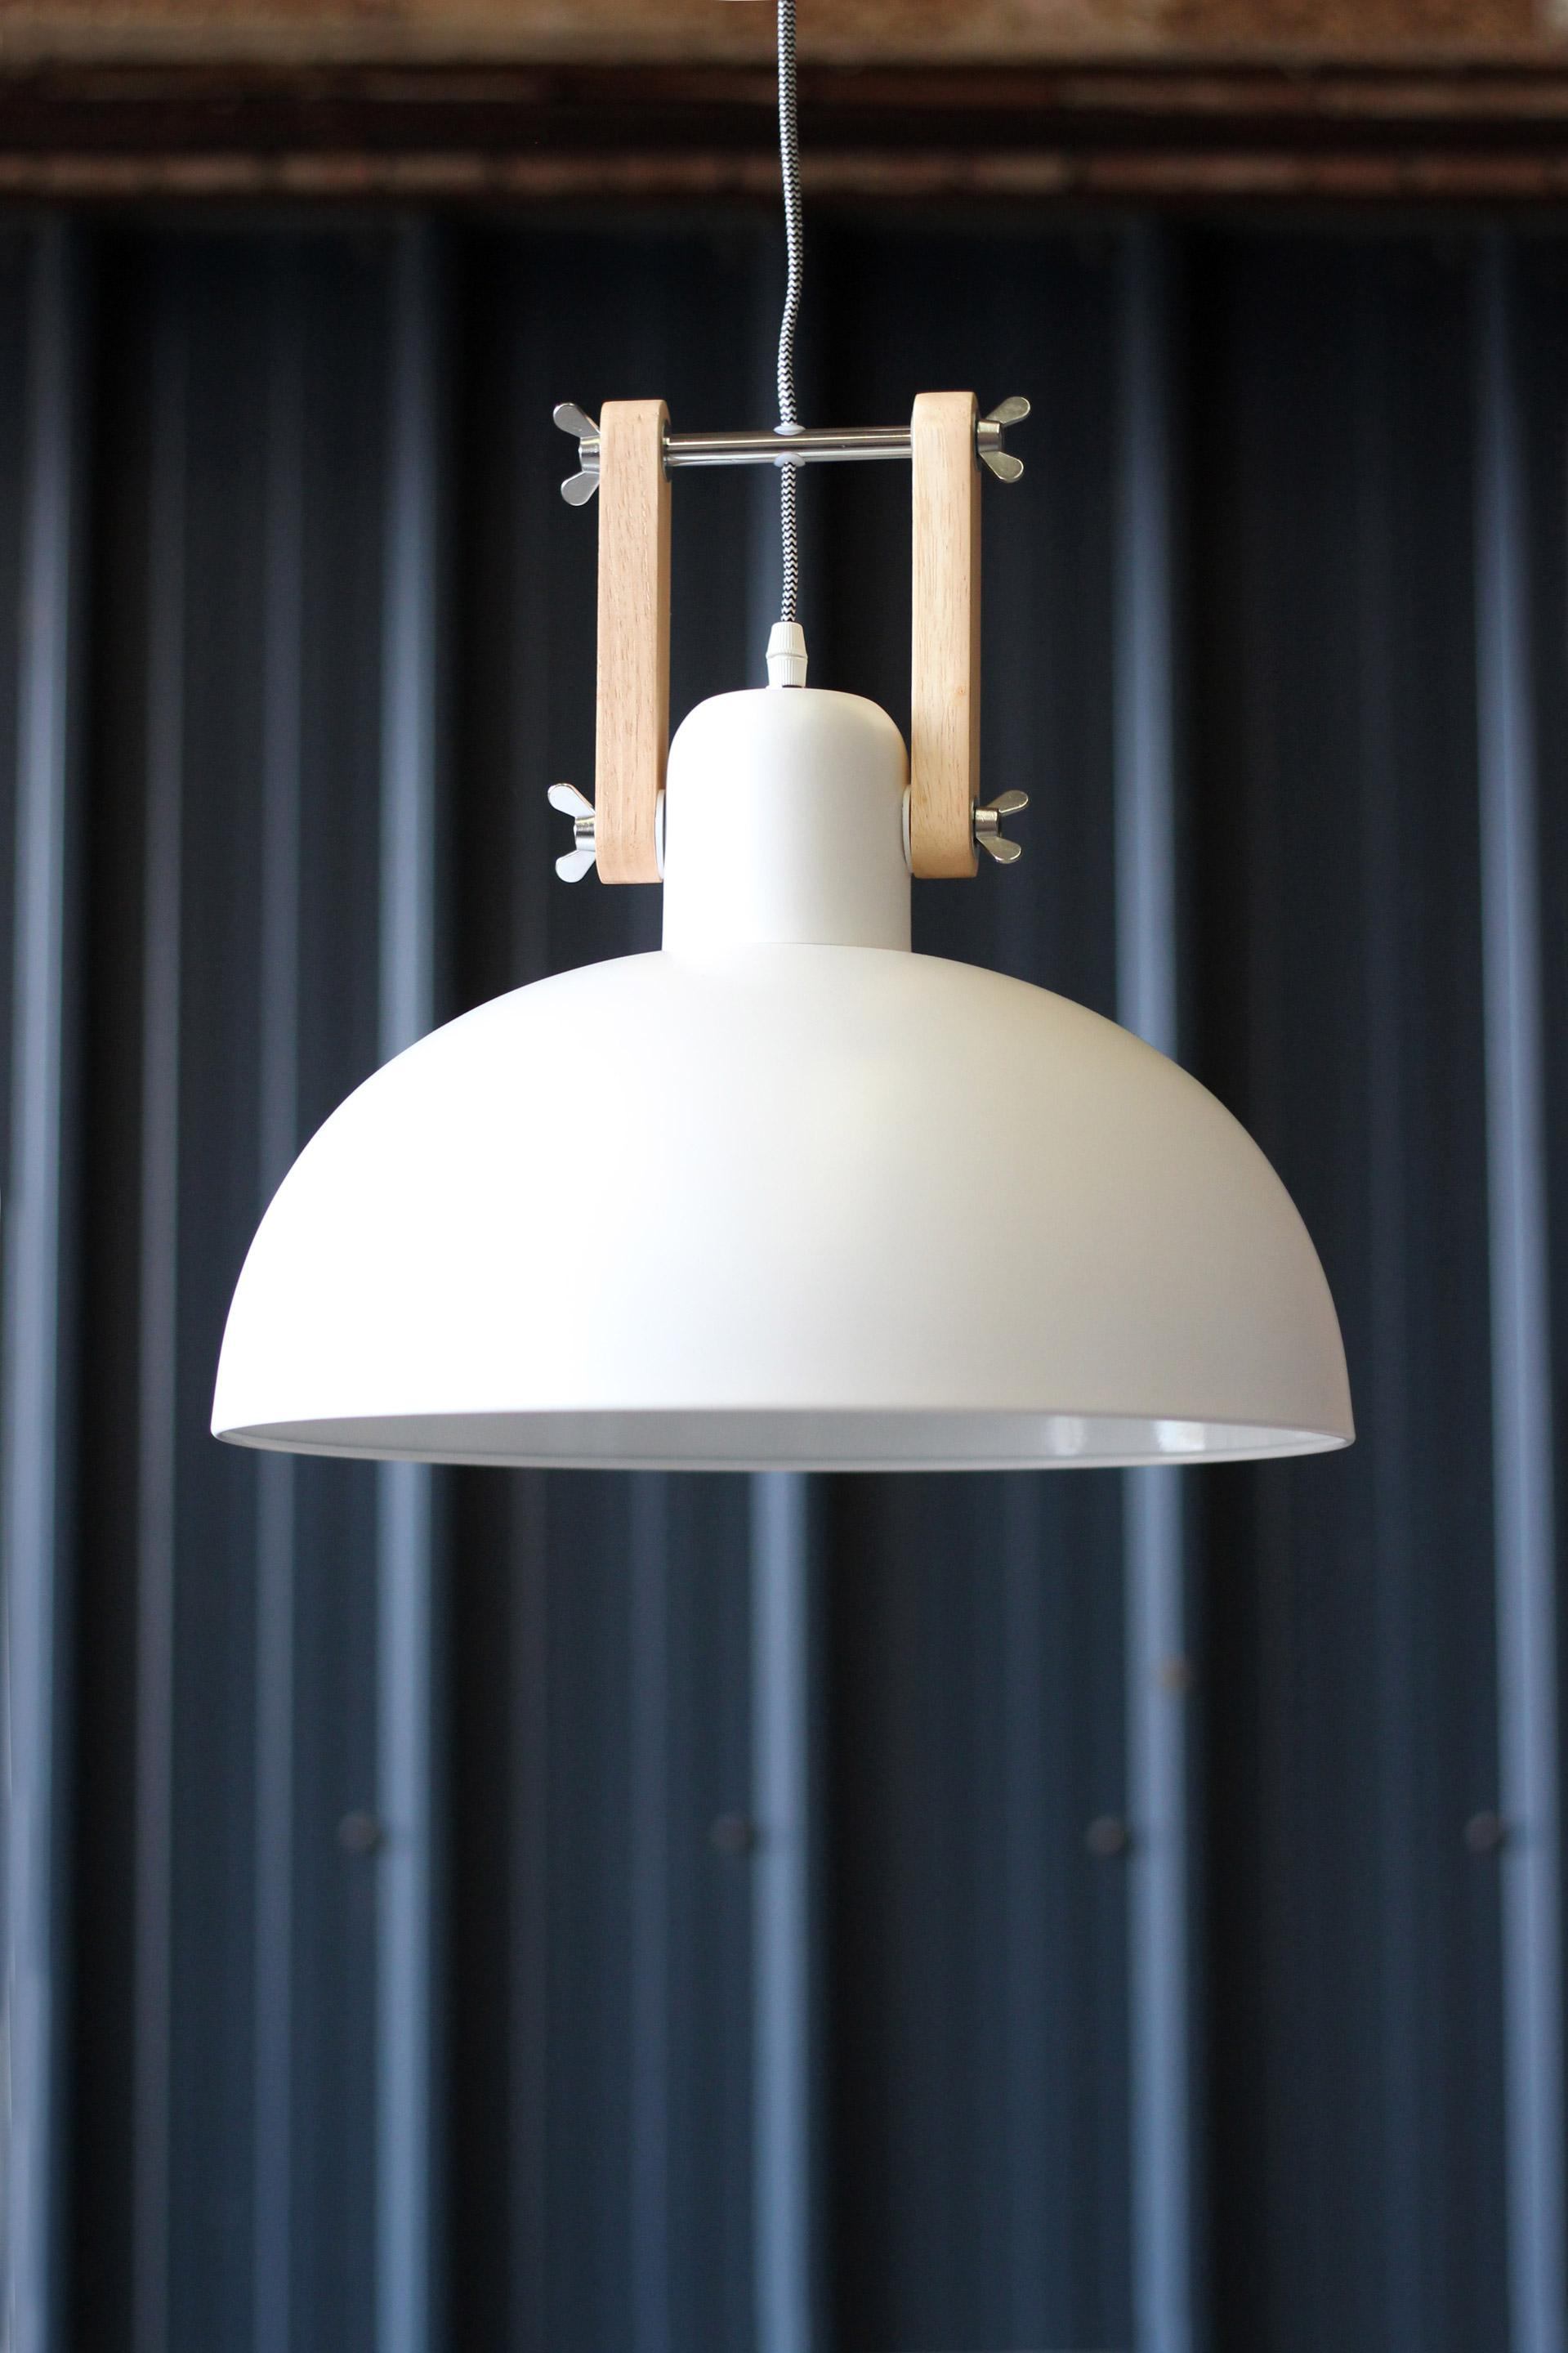 Suspension, e27 scandinave Dexter métal blanc 1 x 60 W